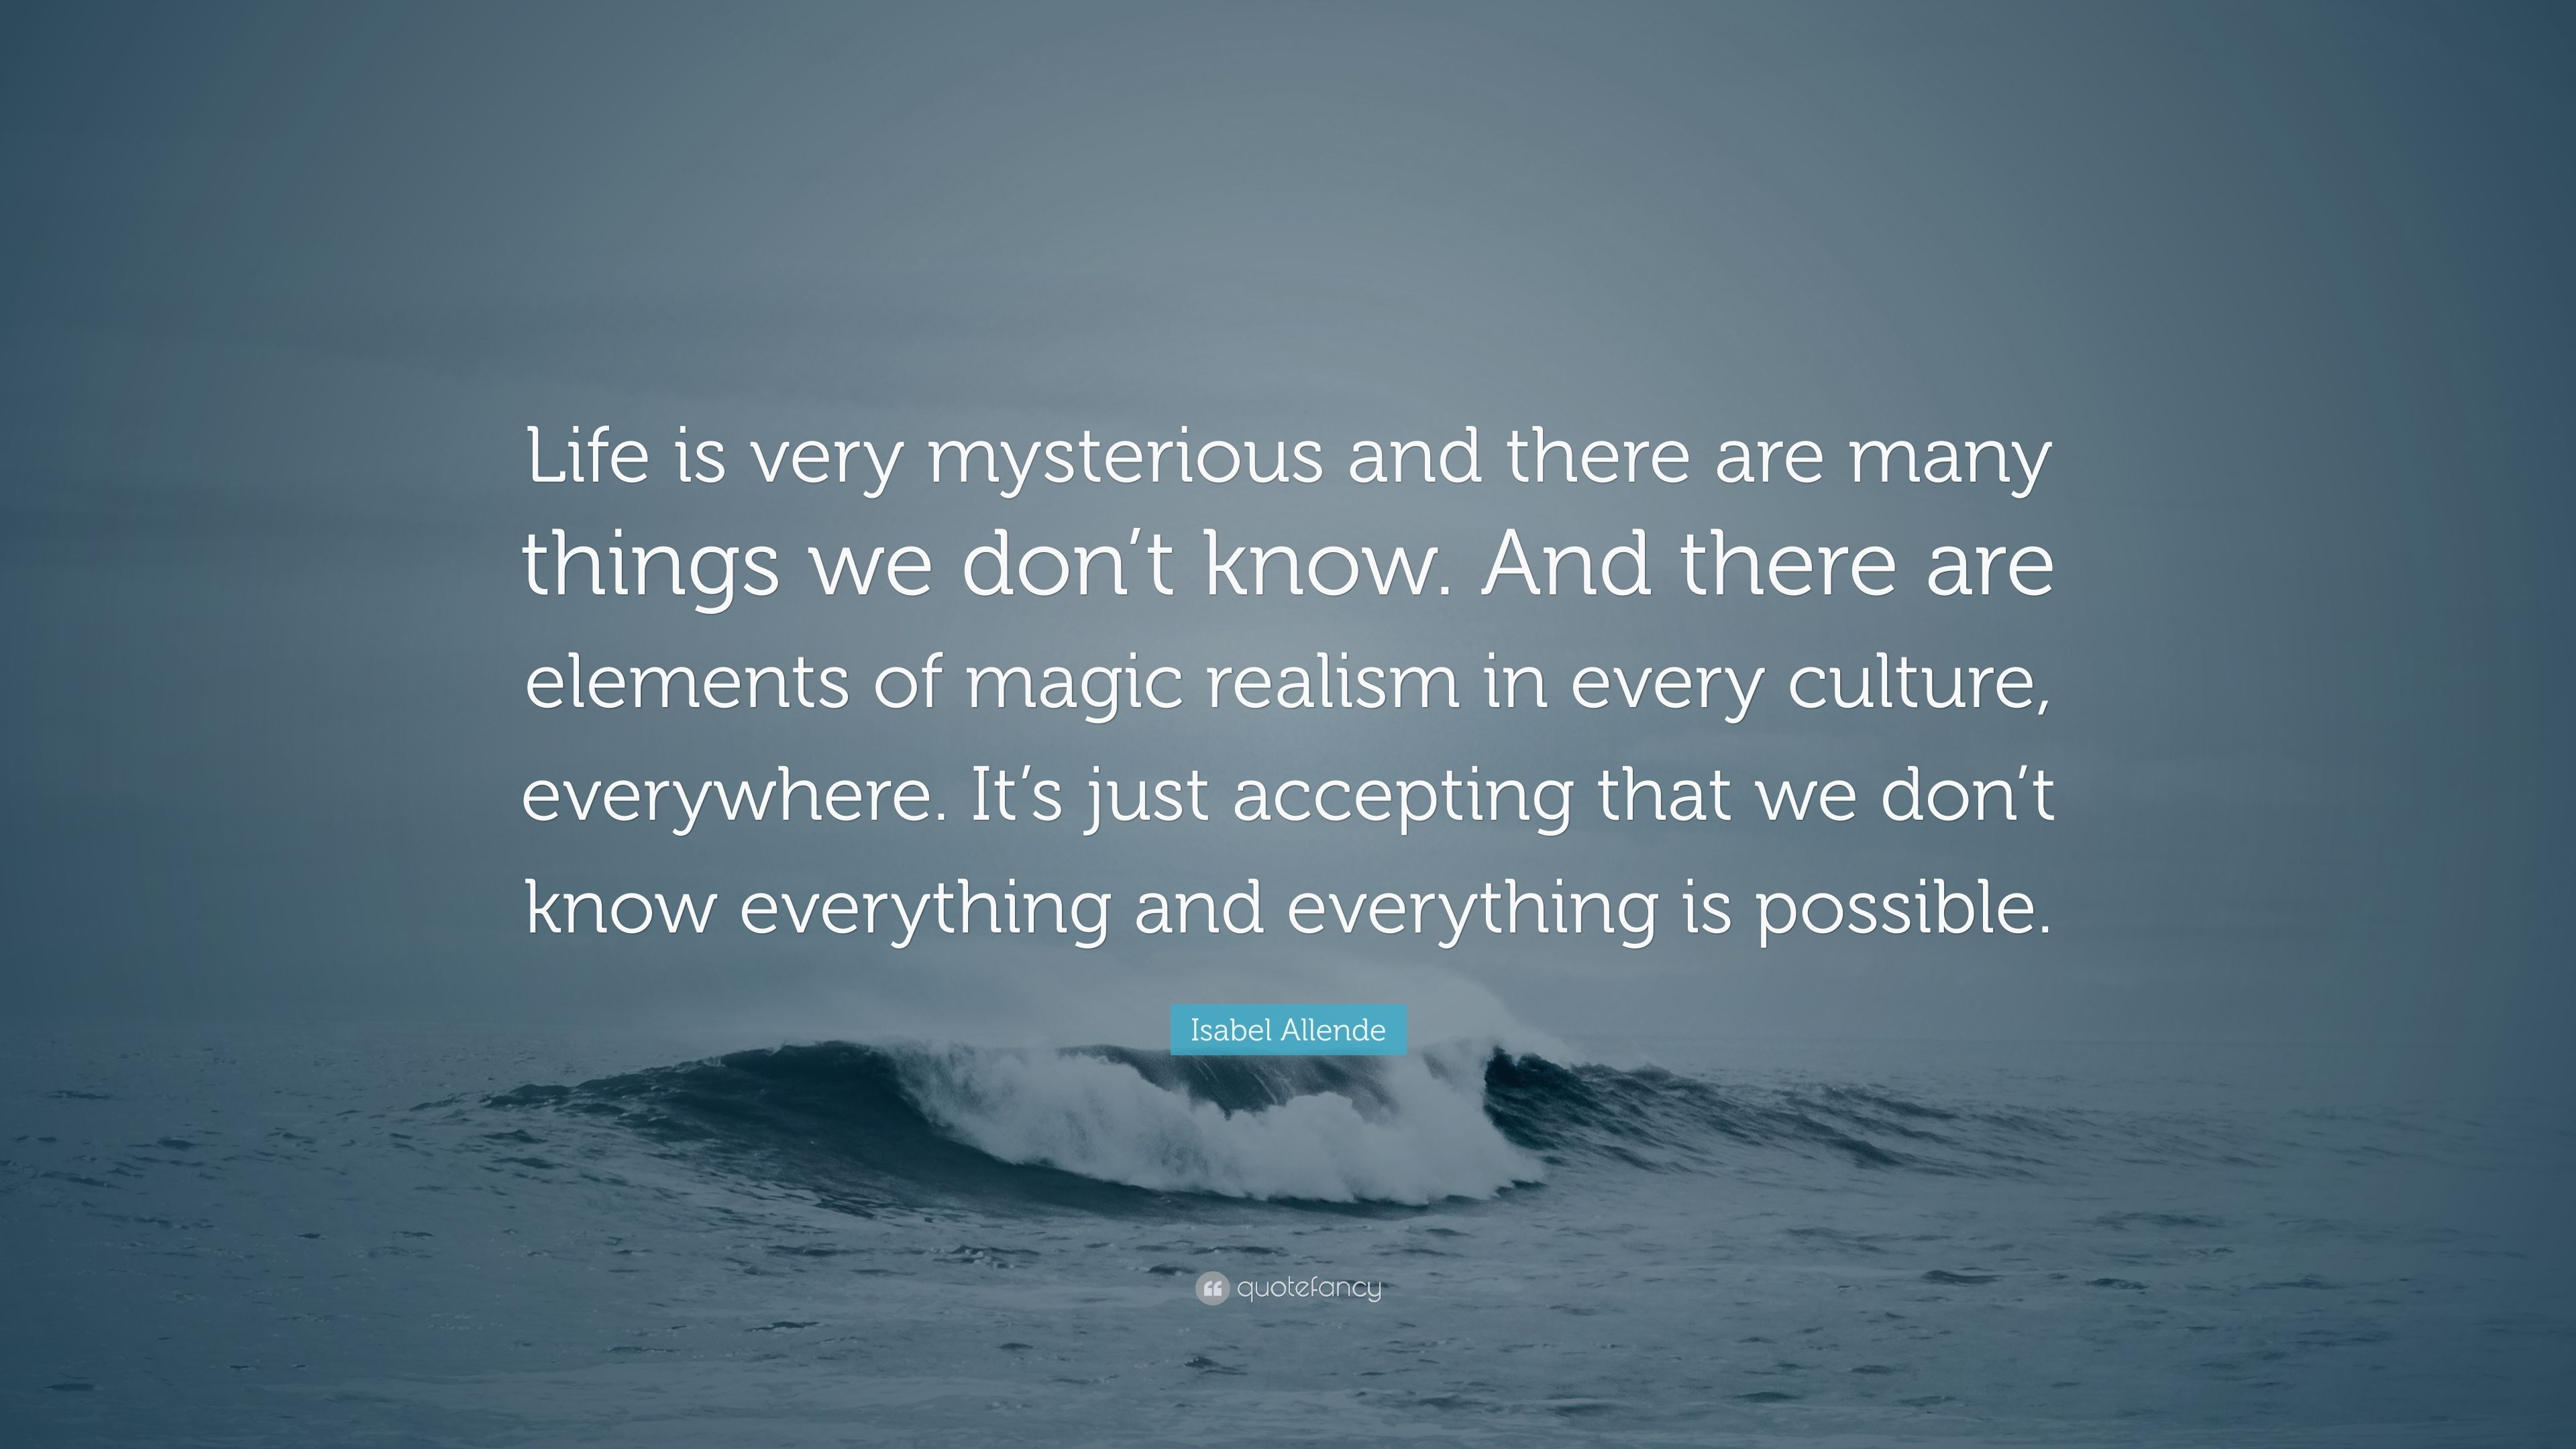 Isabel Allende Quote Life Is Very Mysterious And There Are Many